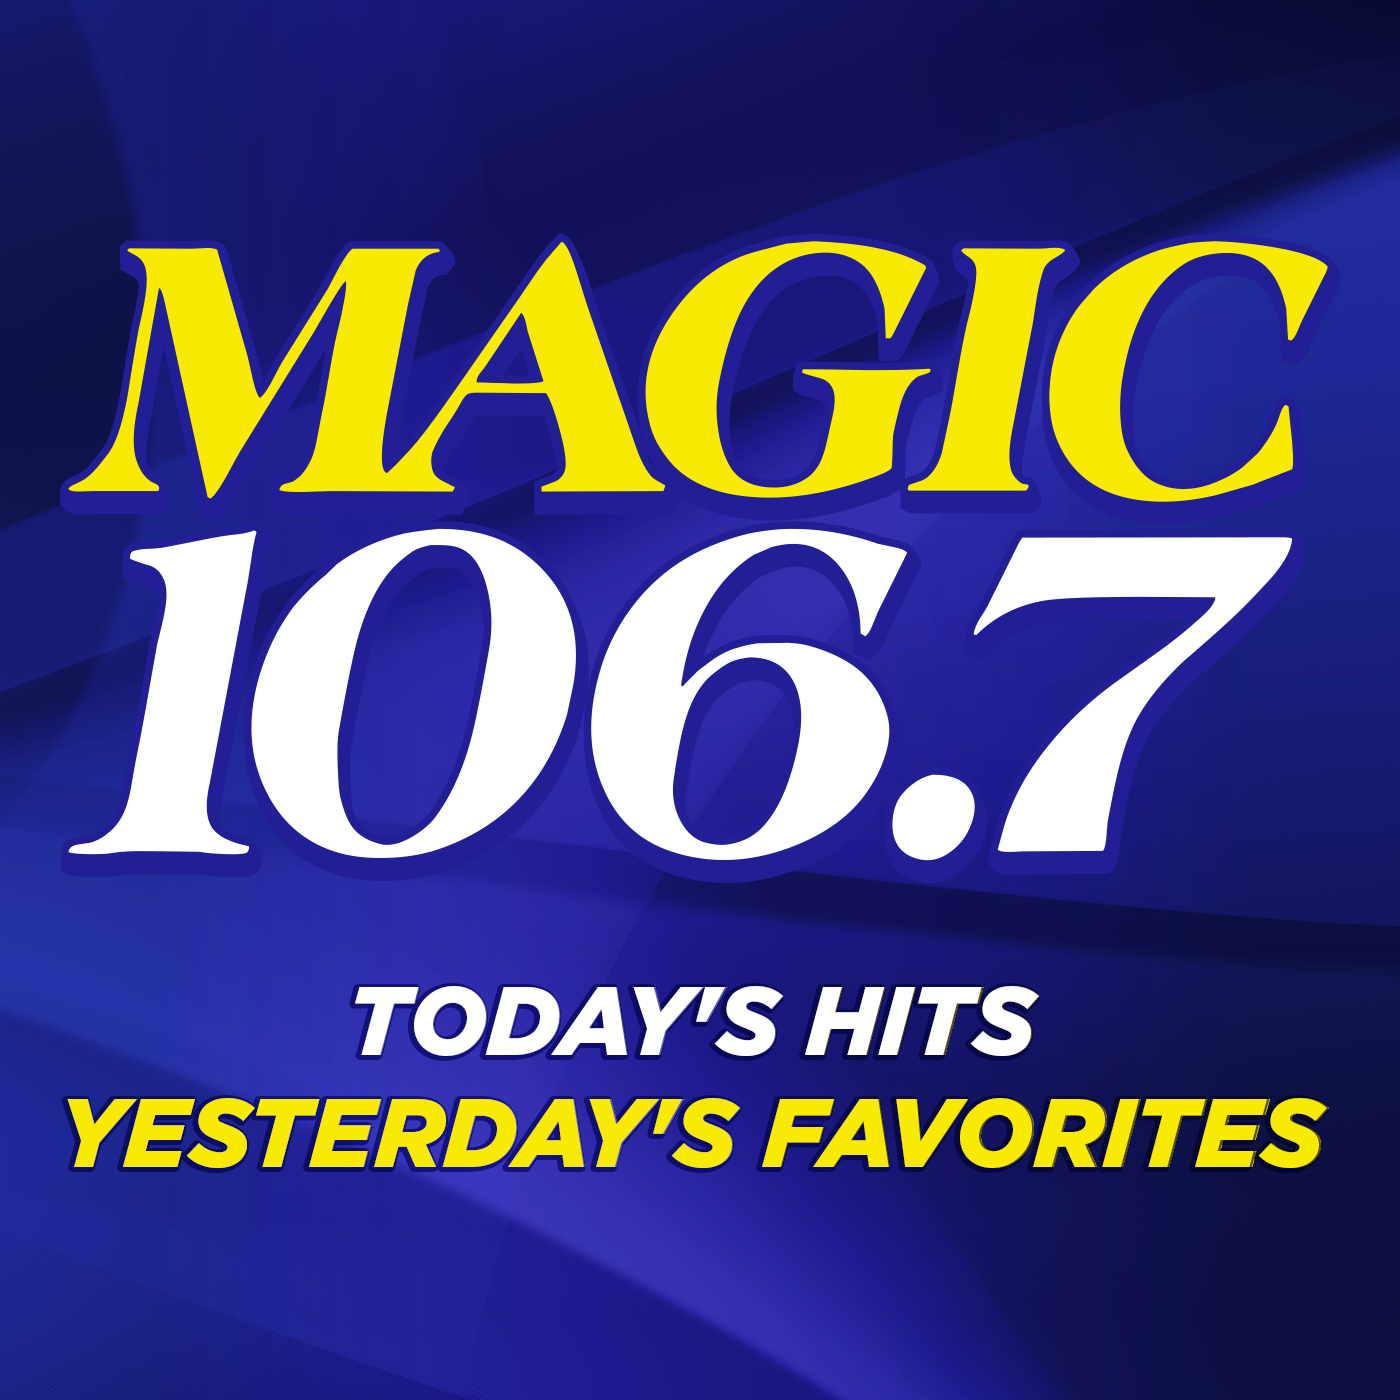 MAGIC 106 7 FM – Today's Hits, Yesterday's Favorites | Radio com